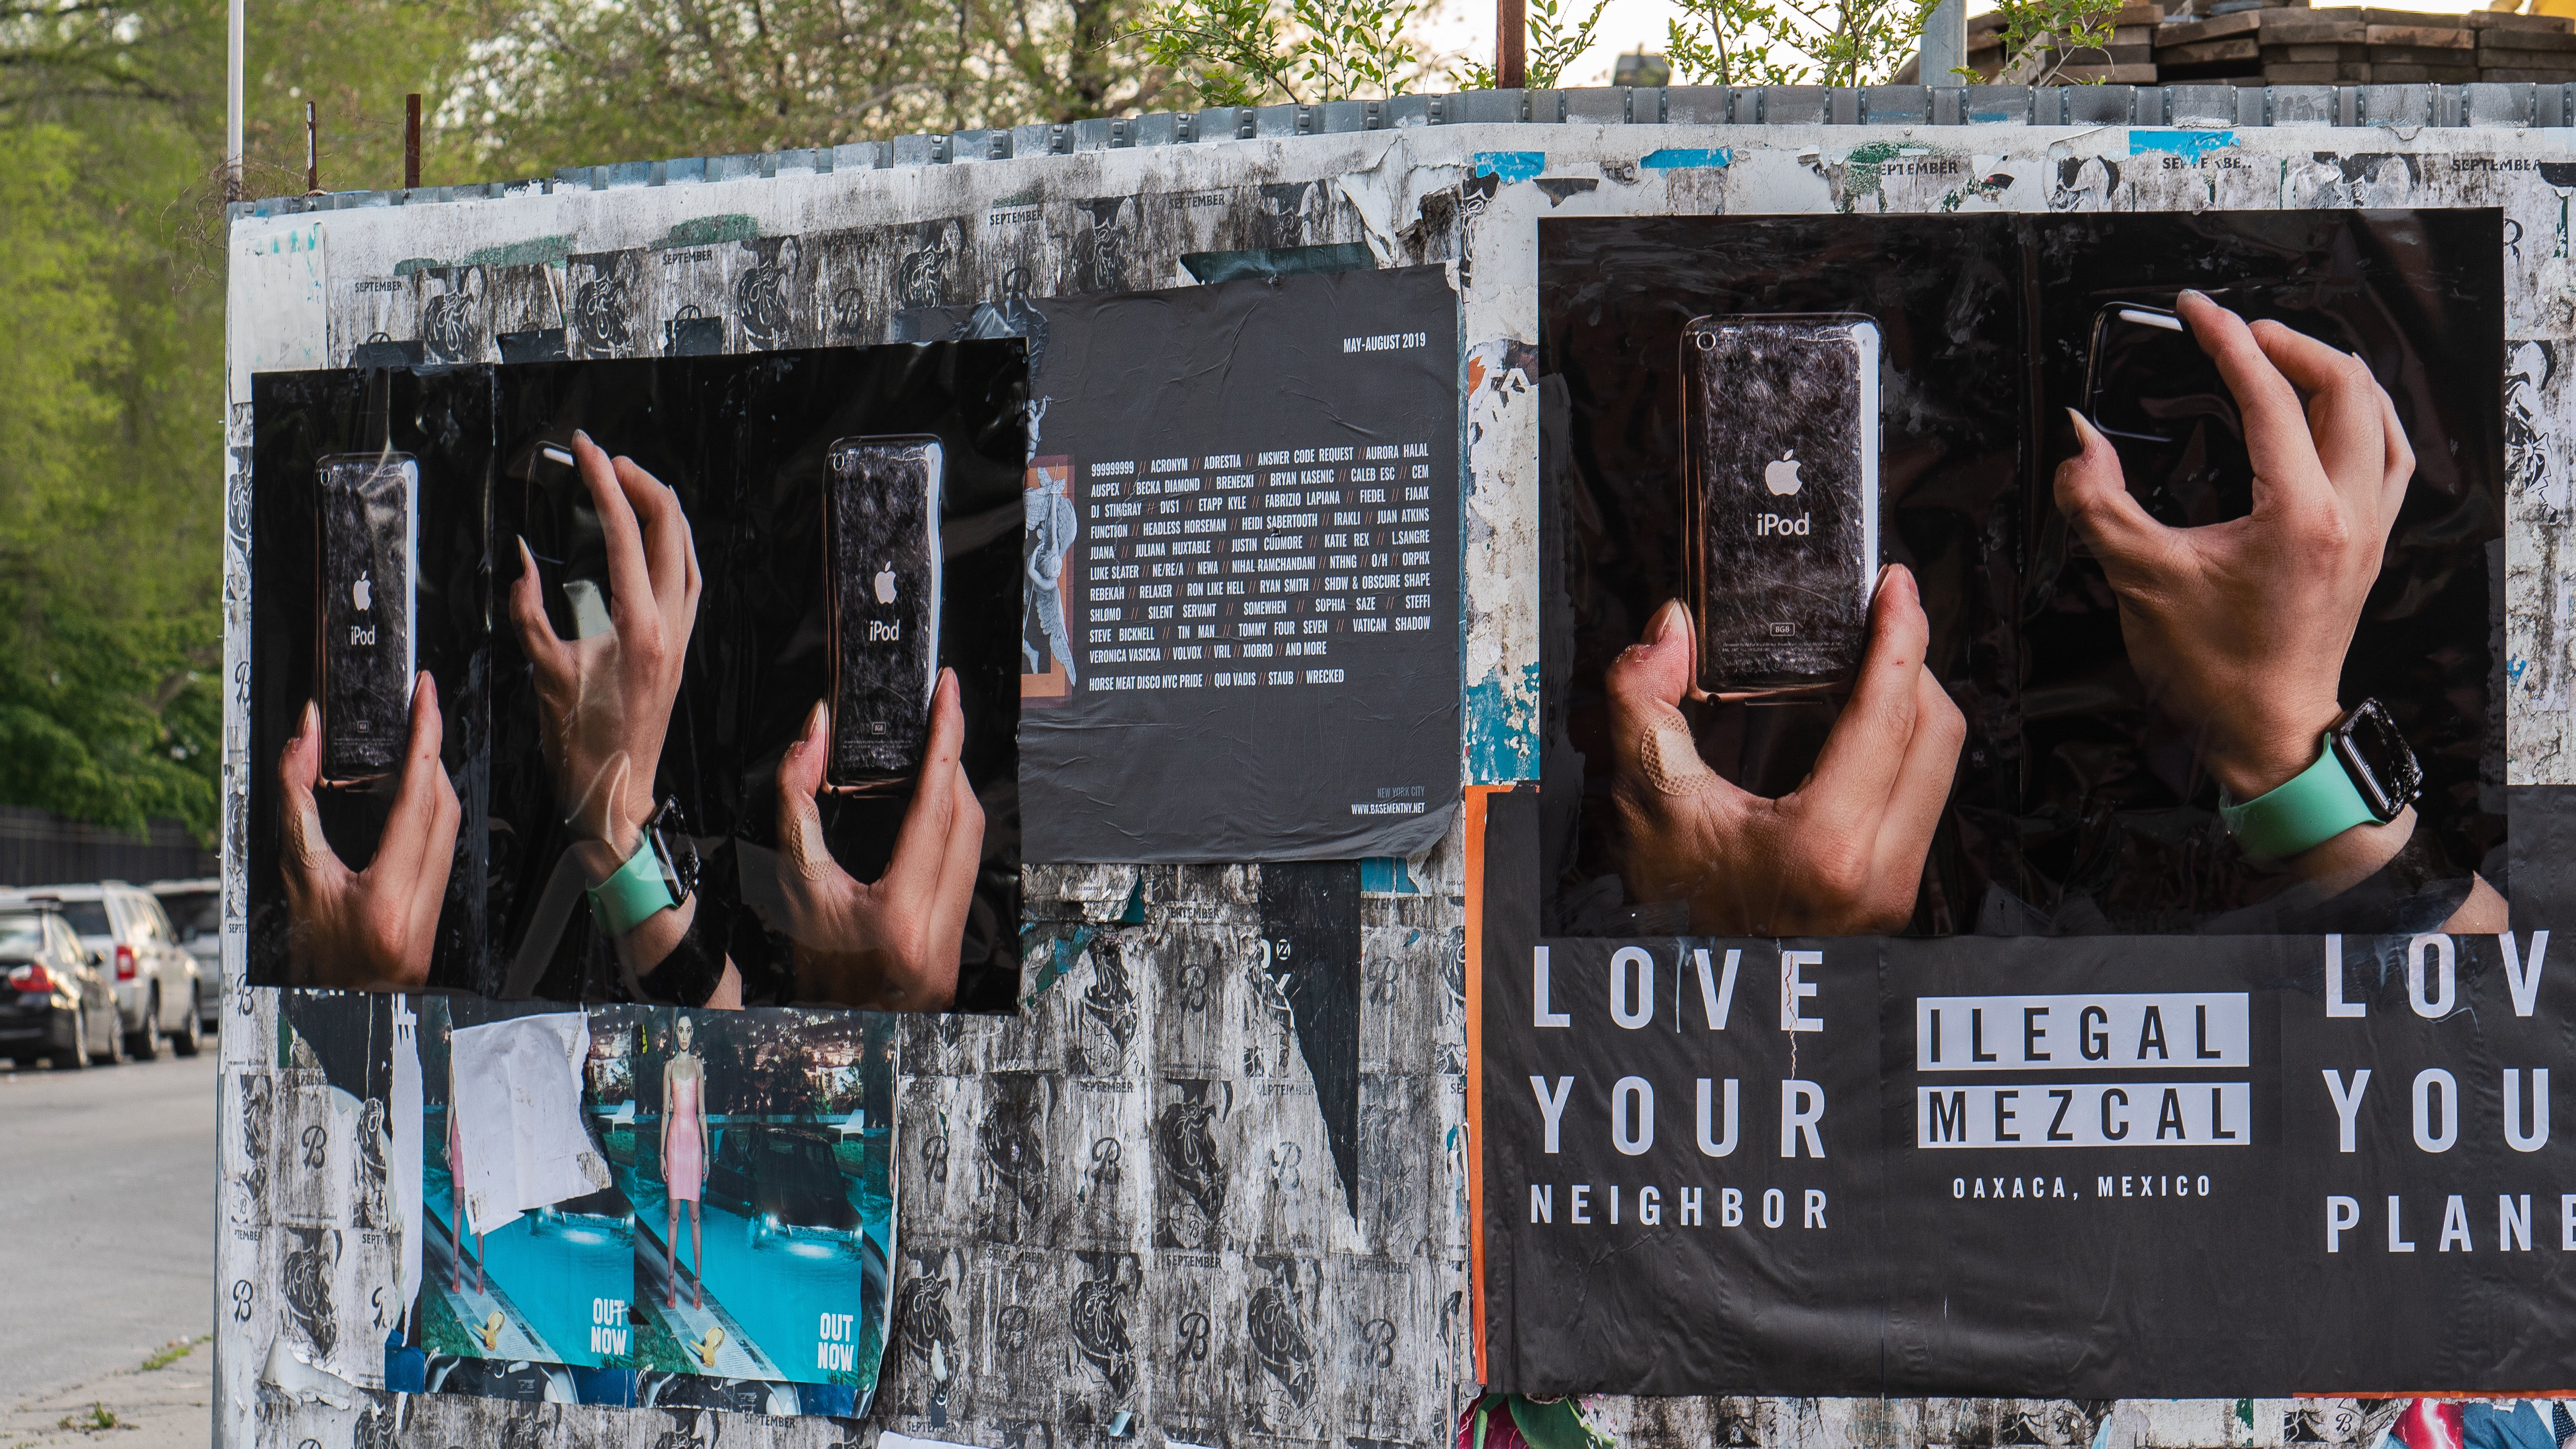 Photography project uses well-worn Apple products to highlight the human side of technology